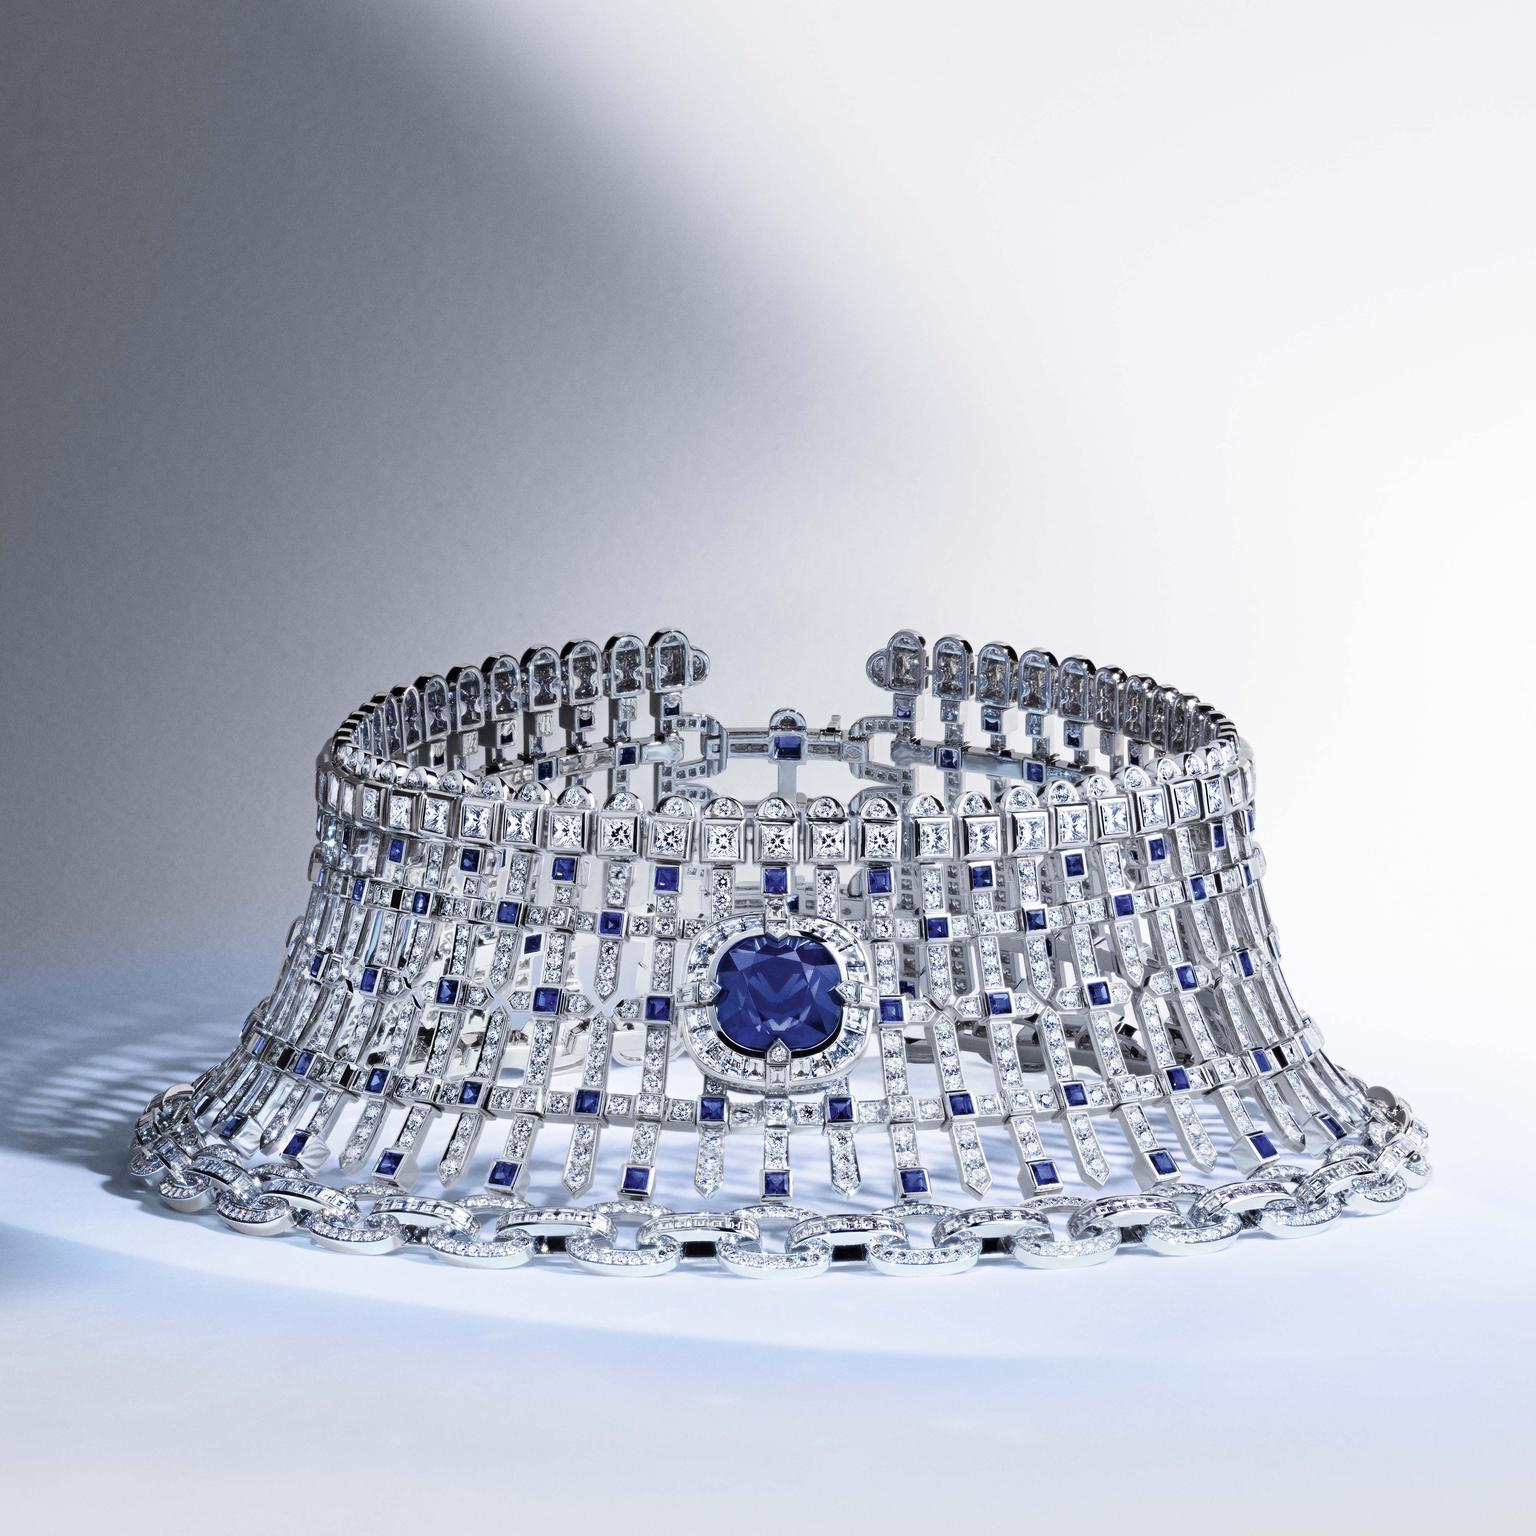 Louis Vuitton Riders of the Knights Le Royaume diamond and sapphire choker